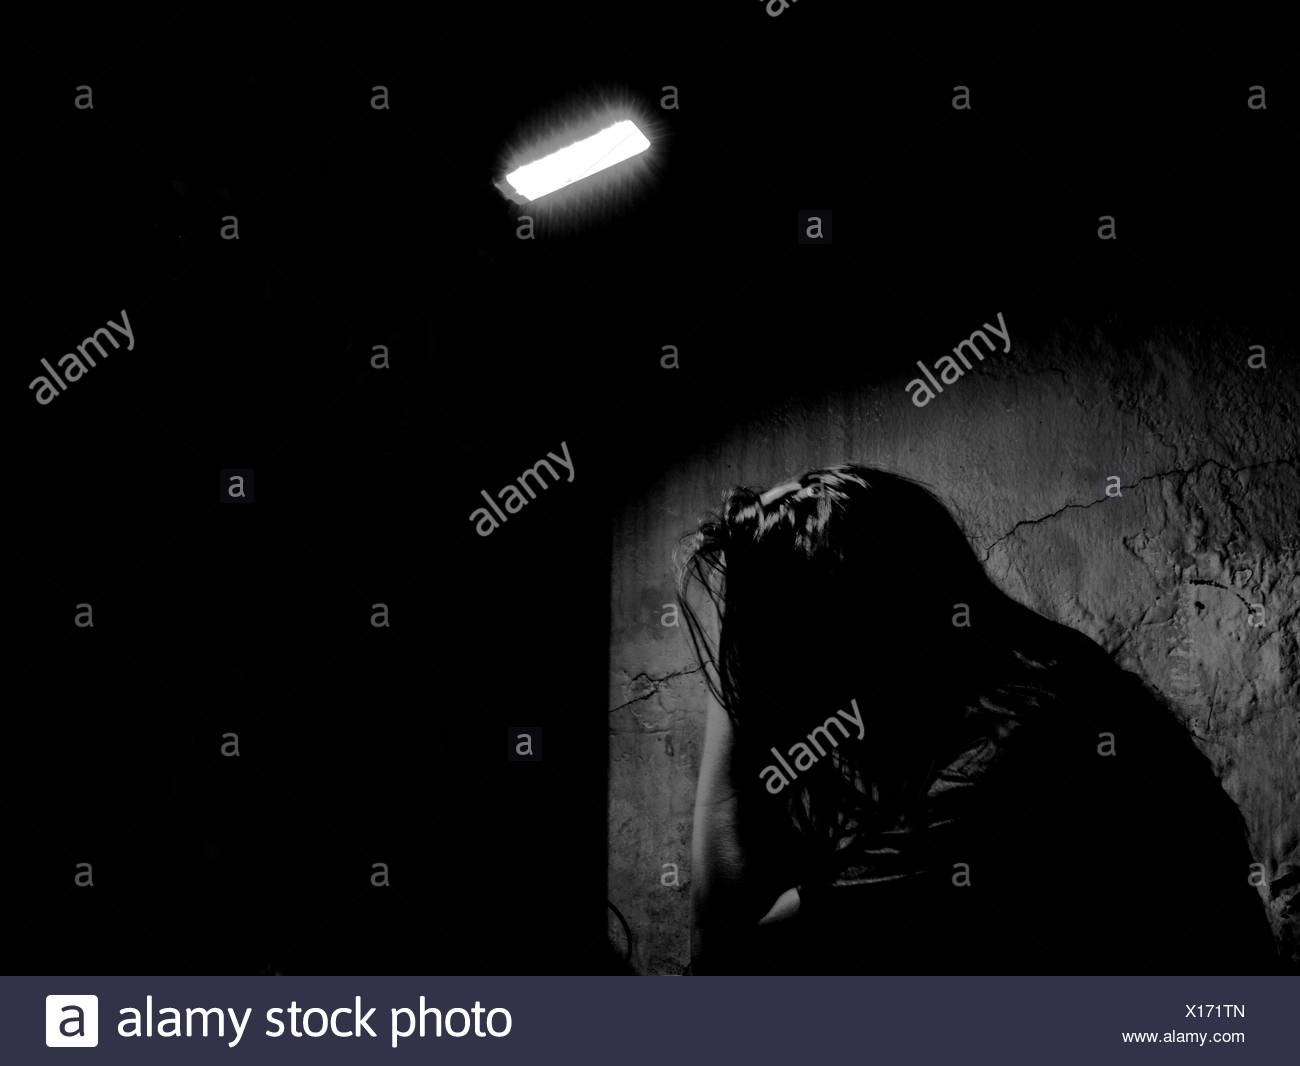 Depressed Woman With Head In Hands In Illuminated House - Stock Image